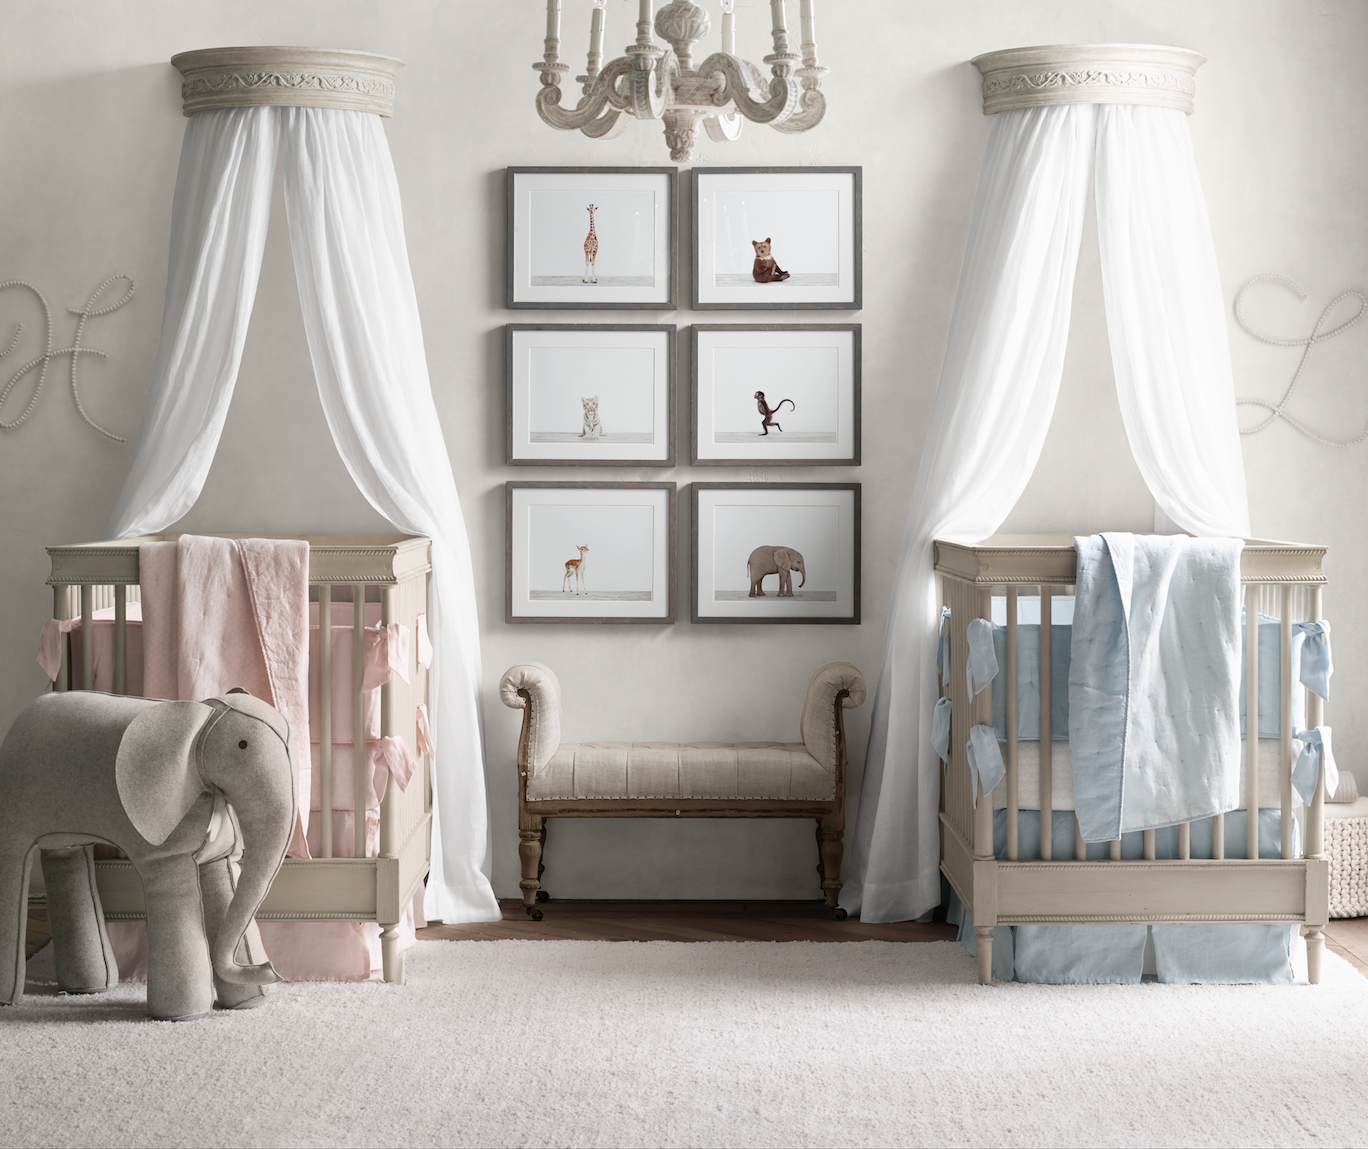 Twin Kids Room: Give A Twins Room A Cohesive Look With Matched Furnishings